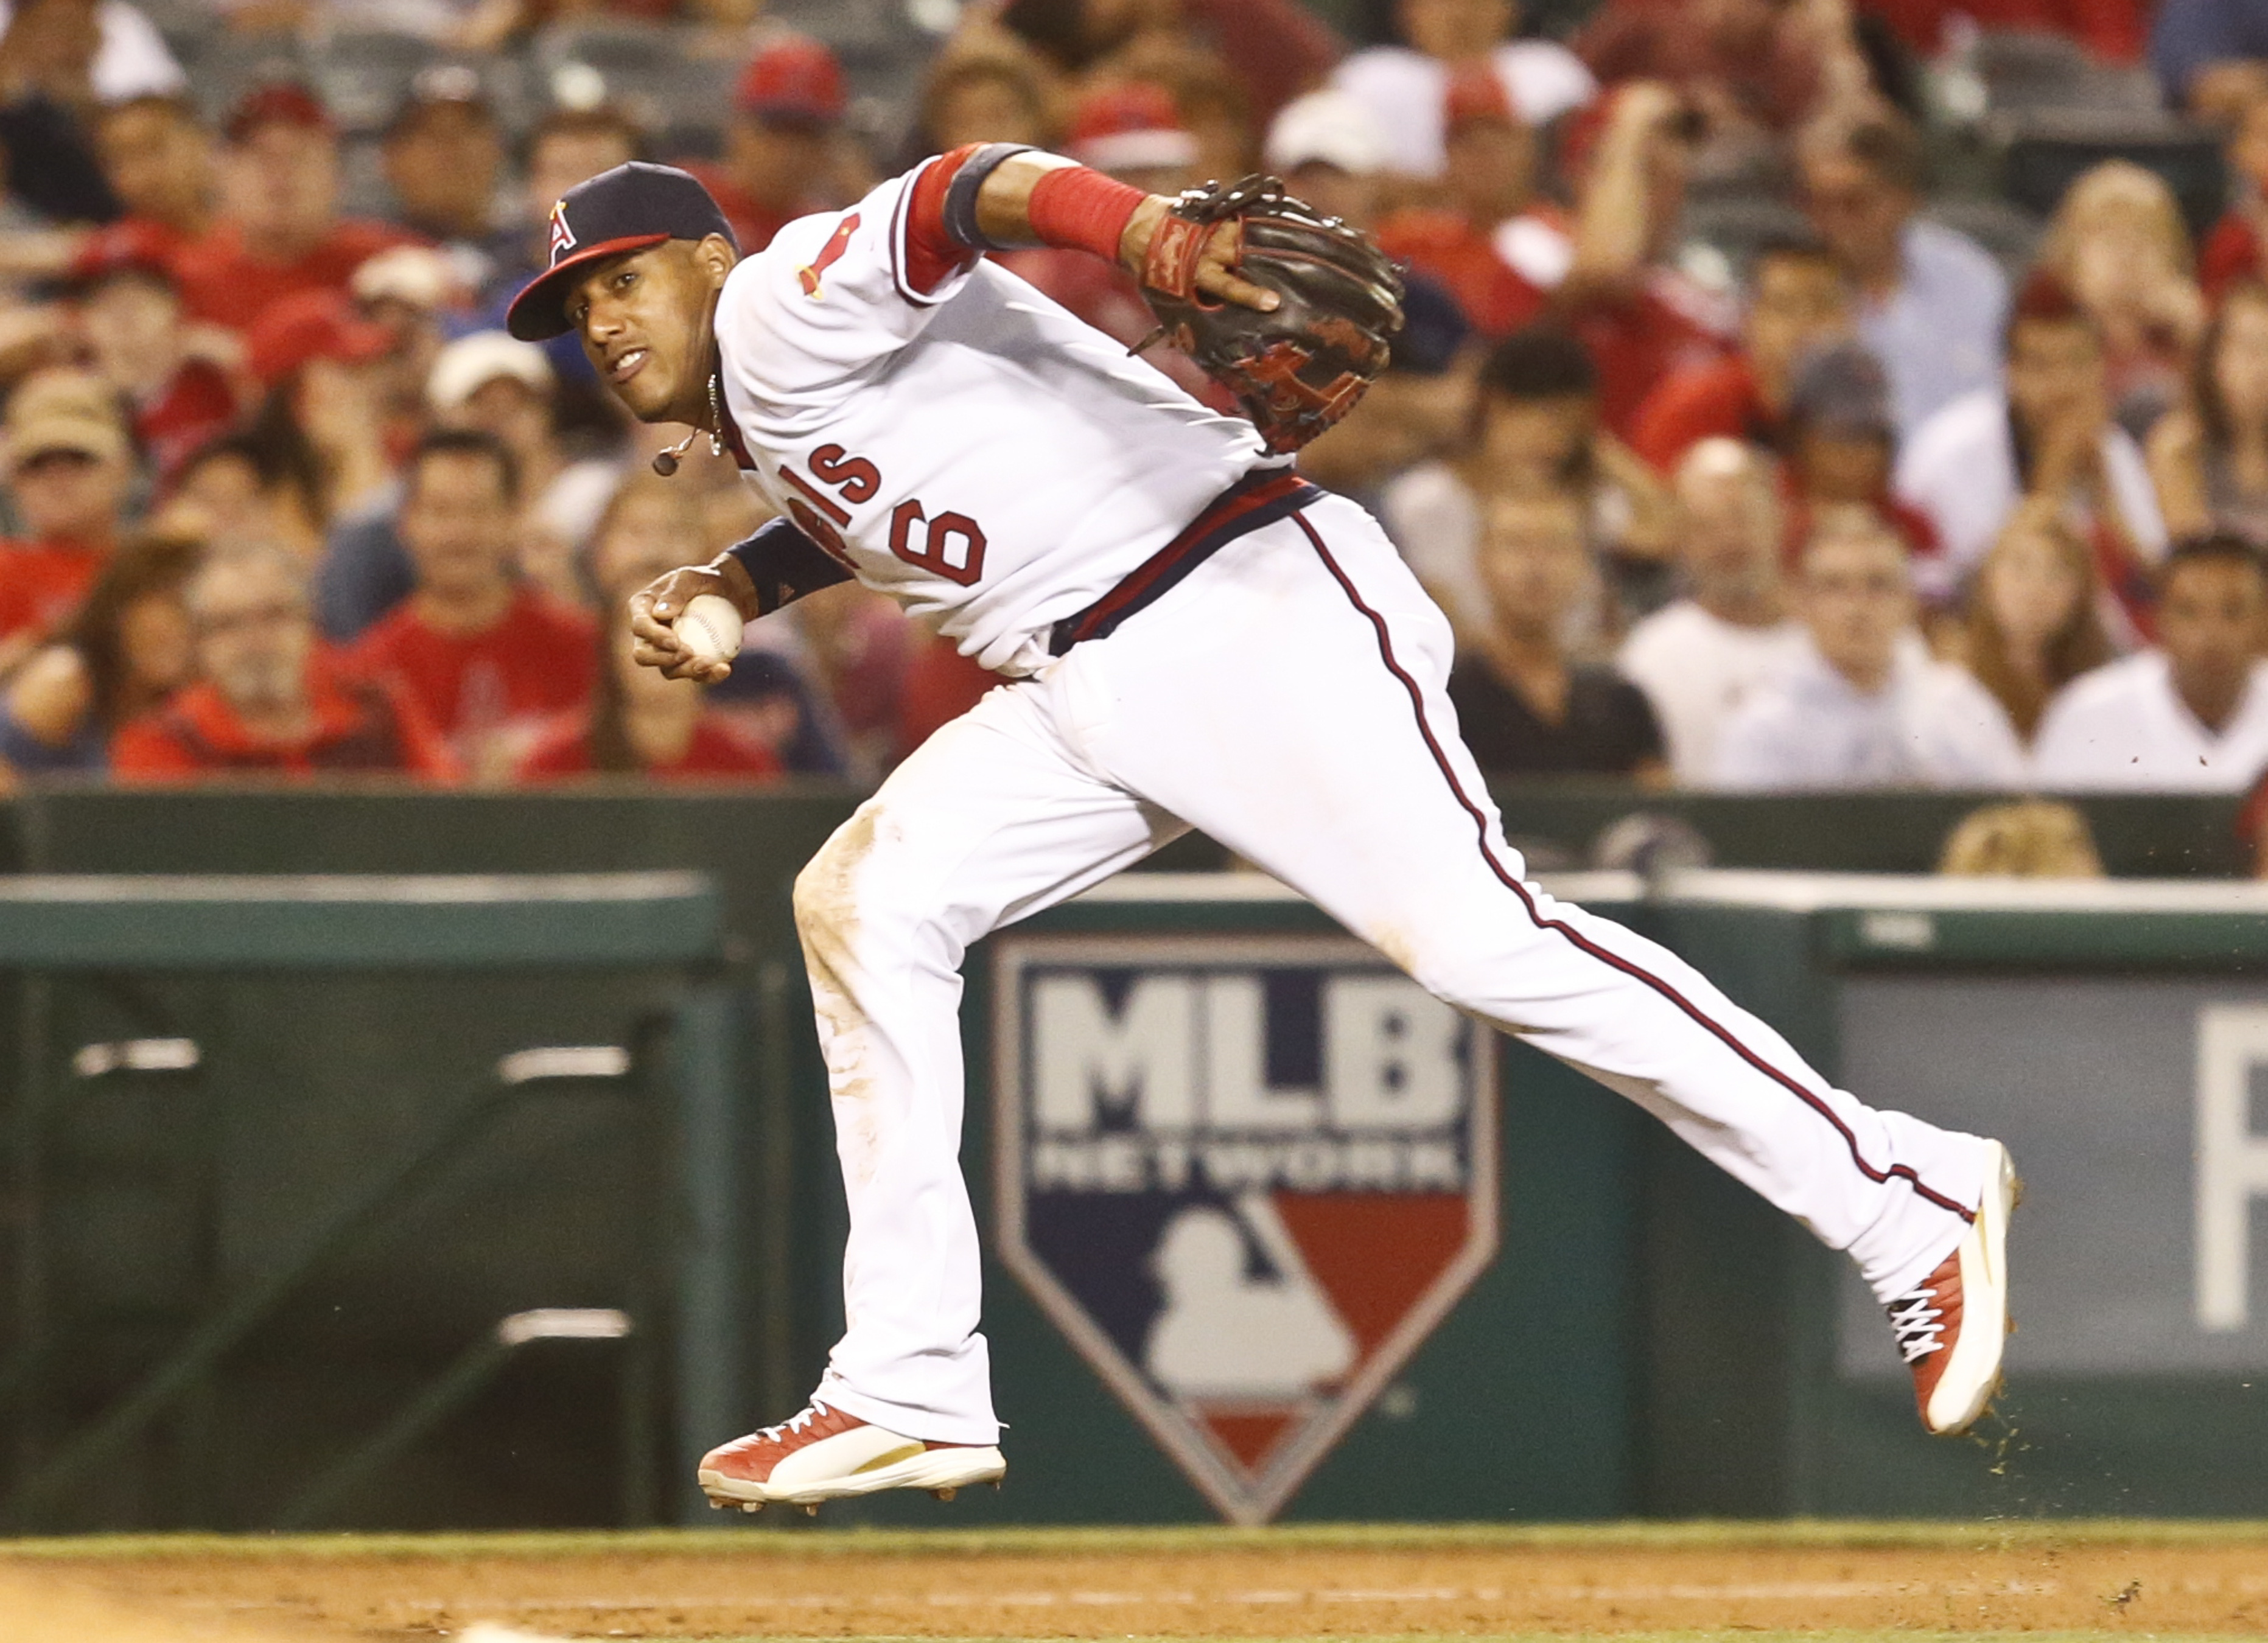 Los Angeles Angels third baseman Yunel Escobar looks toward first but decides not to throw after fielding a slow roller hit by Texas Rangers' Mitch Moreland in the eighth inning of a baseball game Wednesday, July 20, 2016, in Anaheim, Calif. (AP Photo/Len